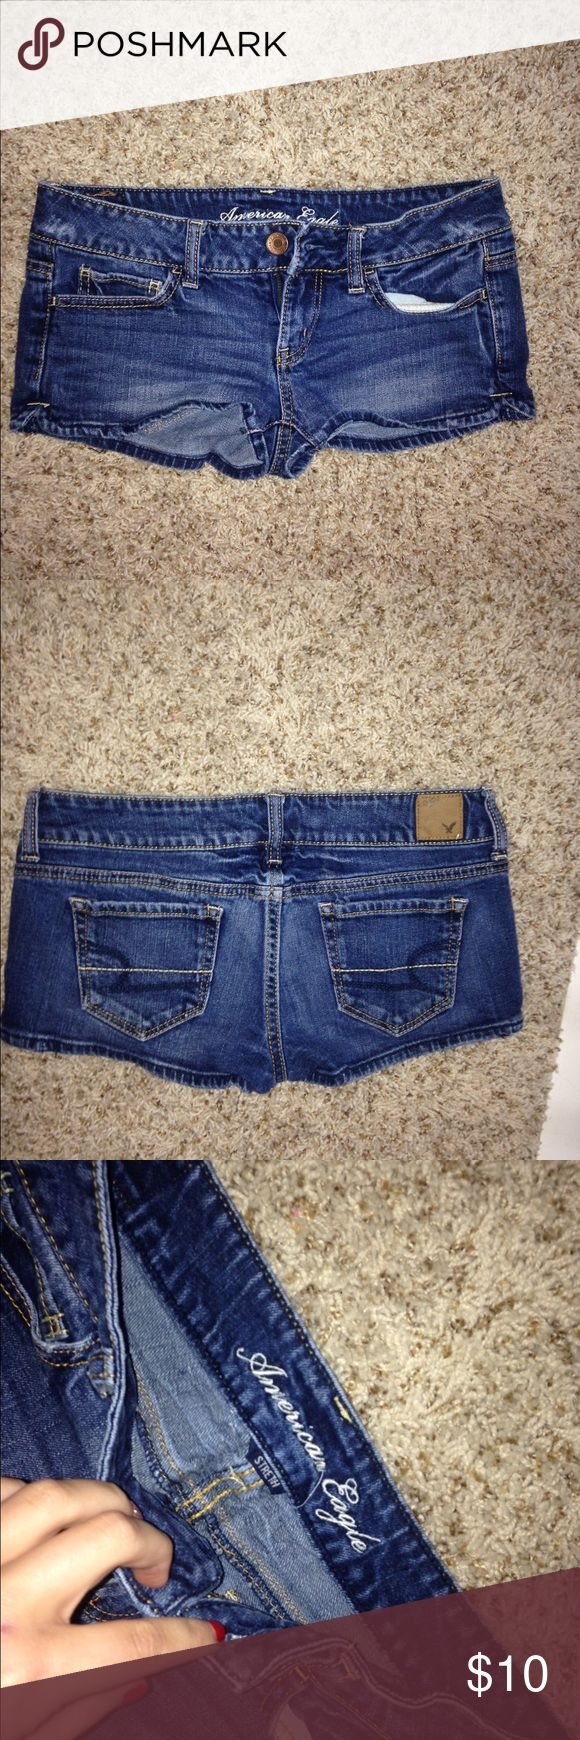 American eagle shorts American eagle jean shorts! Size:2 ! Great condition American Eagle Outfitters Shorts Jean Shorts